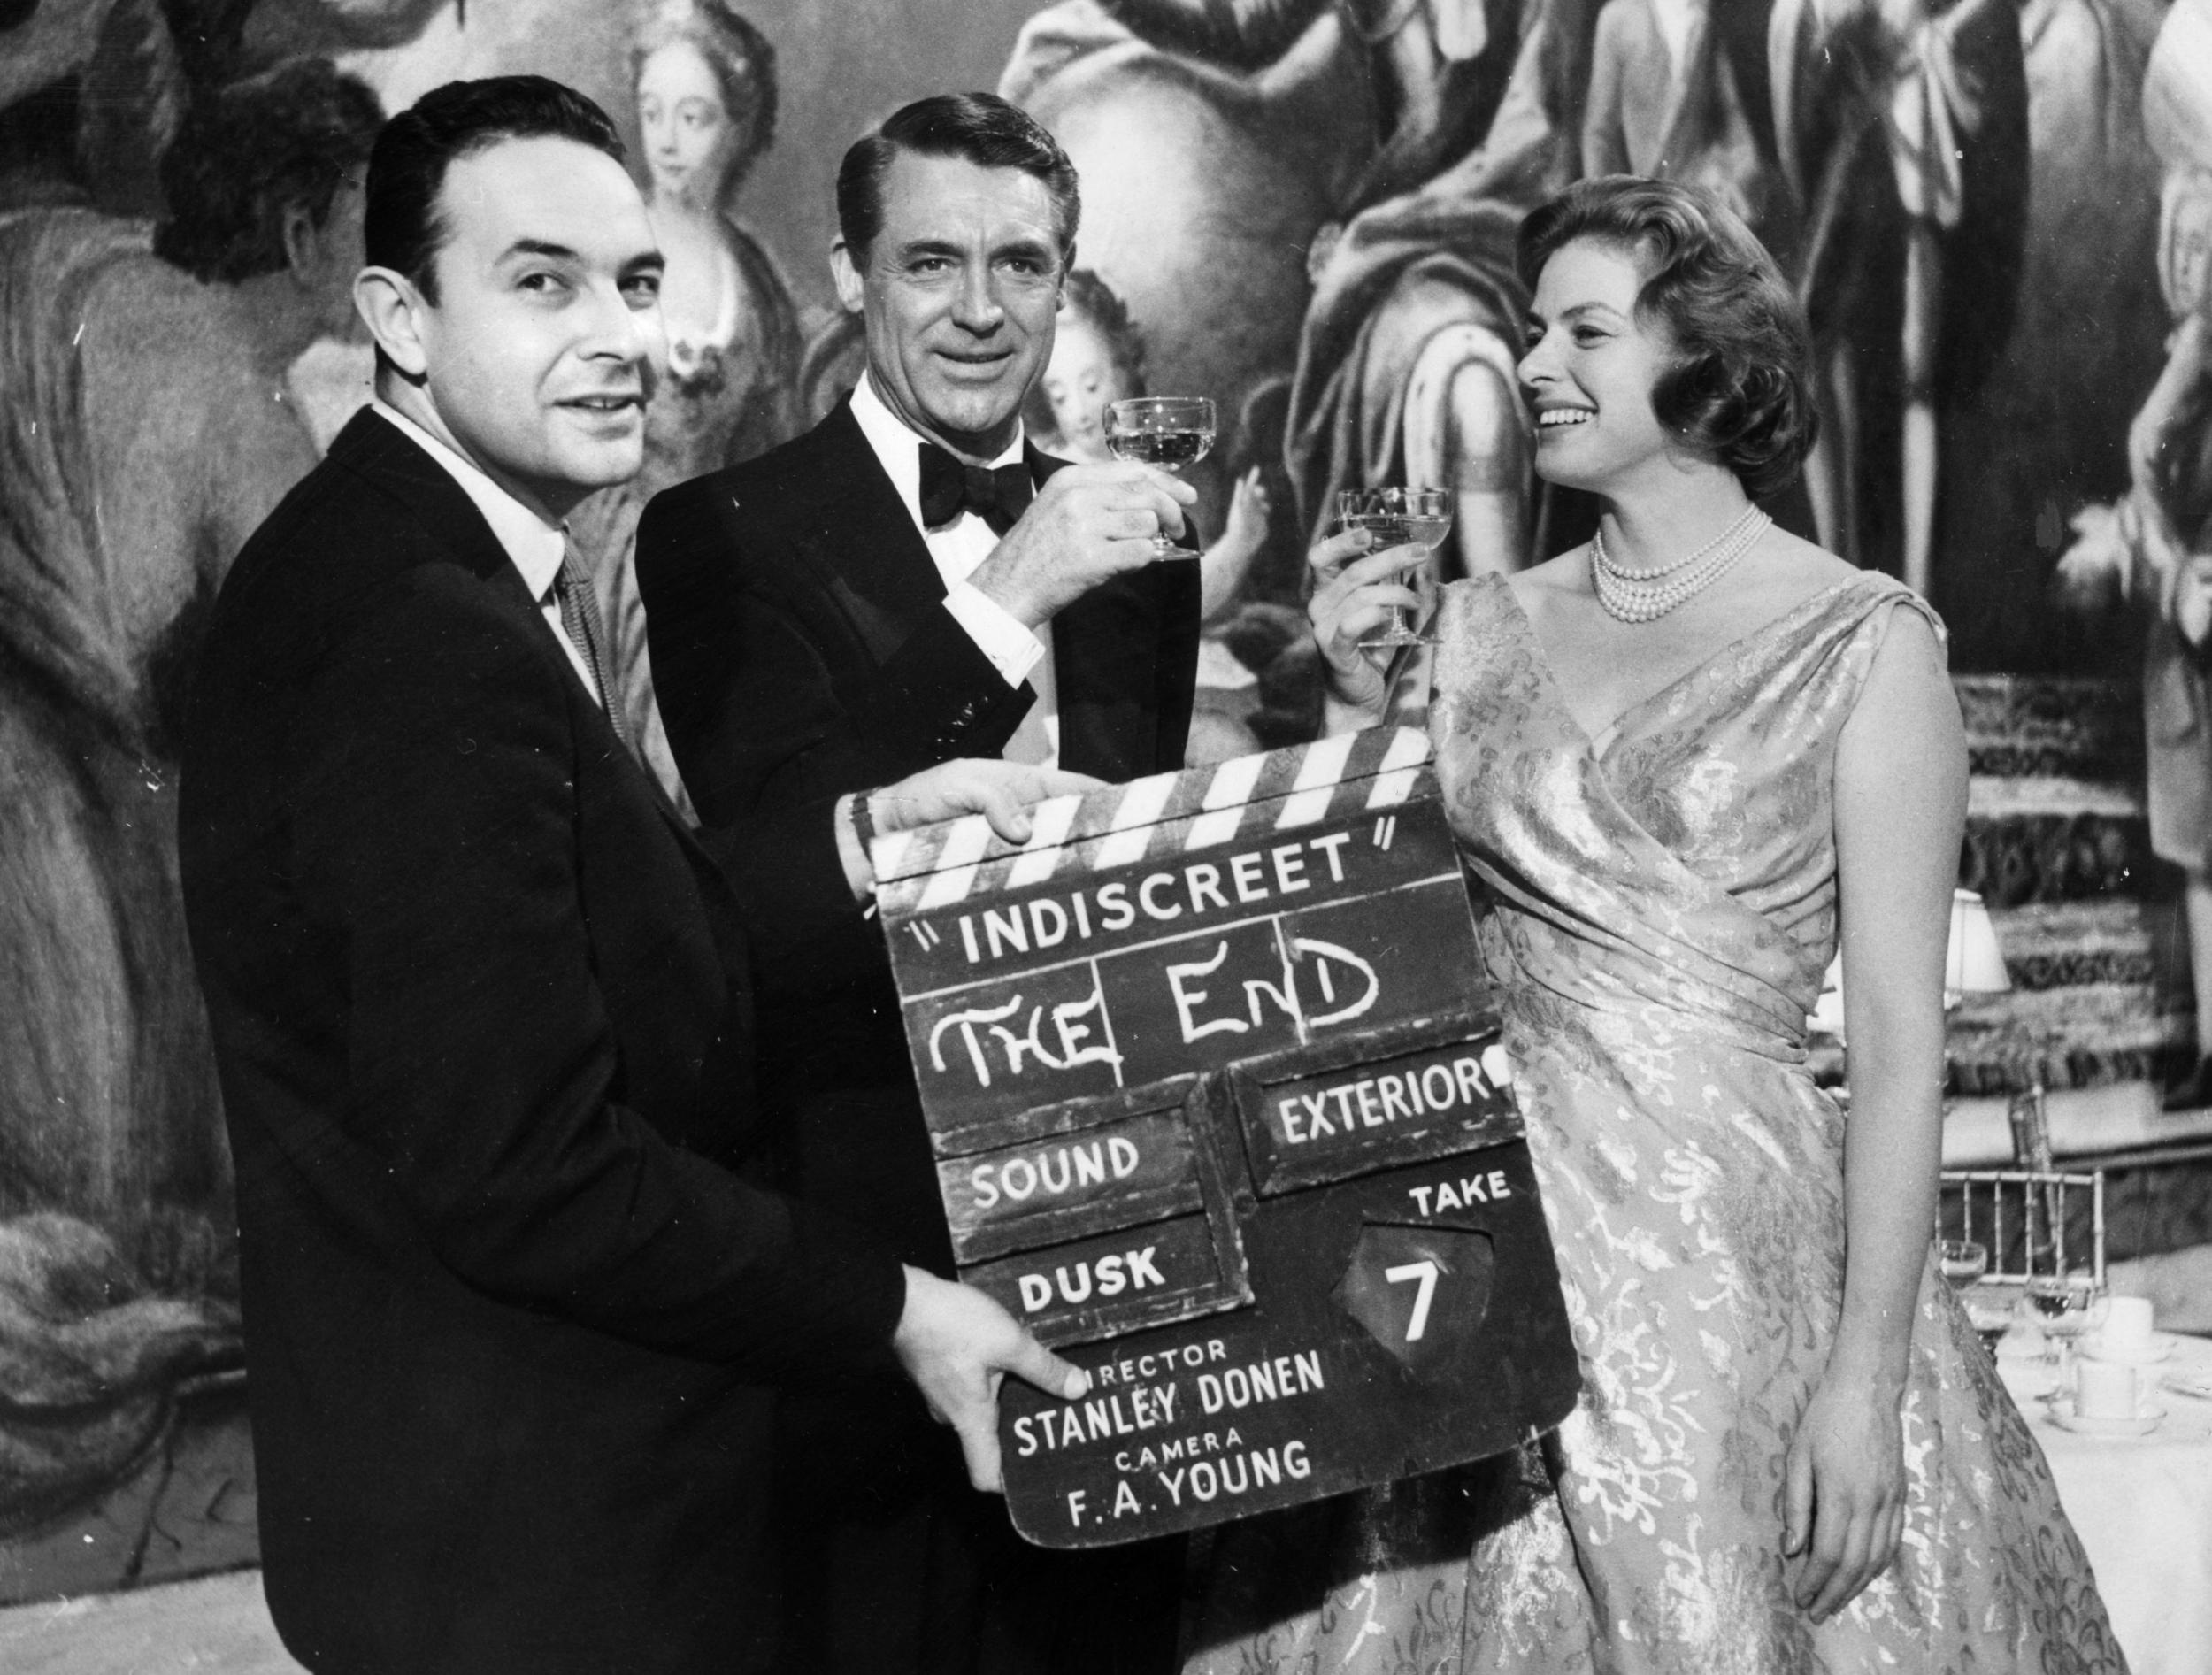 Stanley Donen dead: Director of Hollywood's golden age musicals including Singin' in the Rain and Funny Face dies aged 94